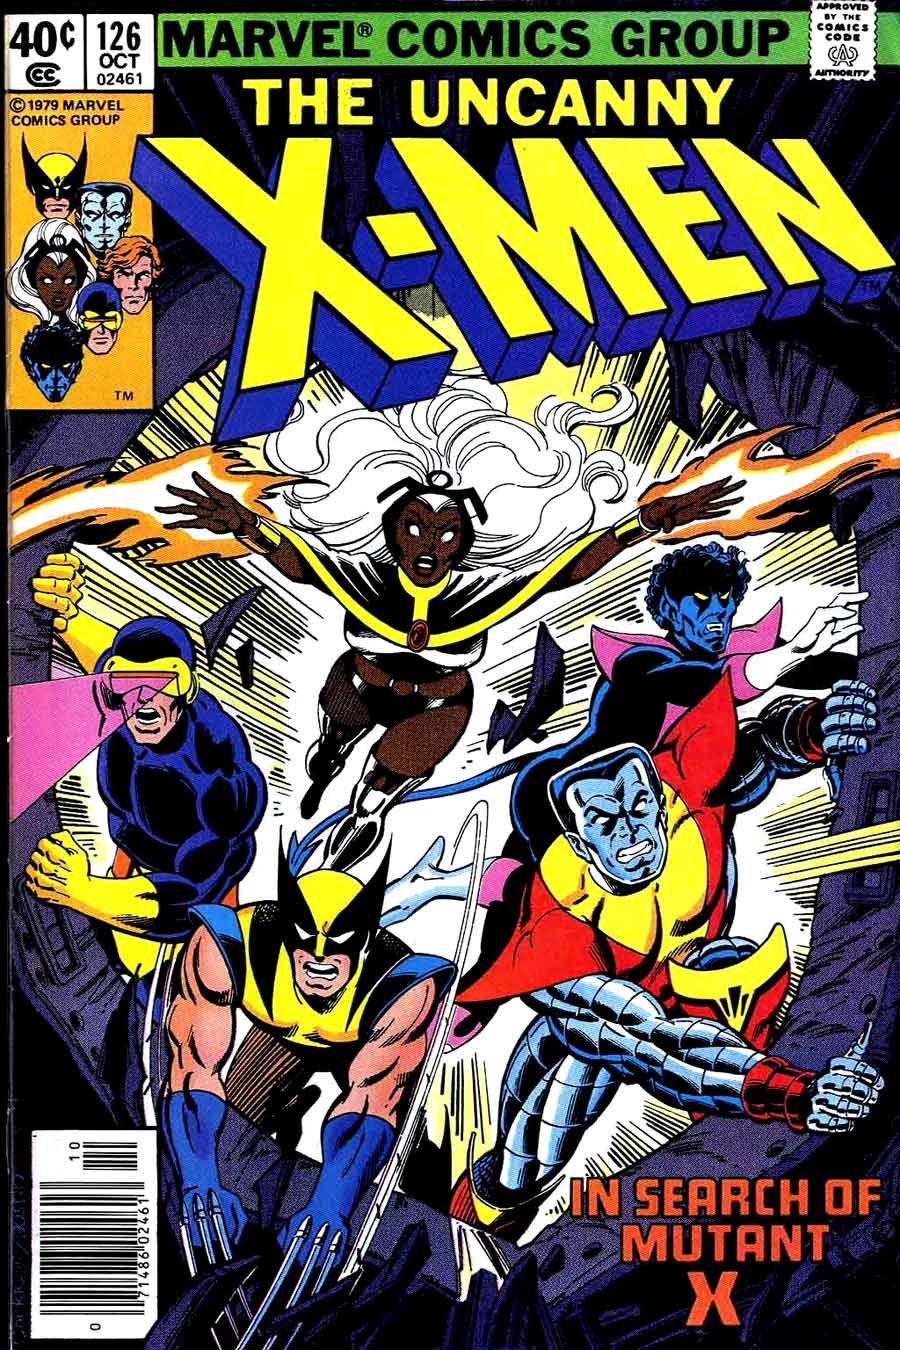 X-men v1 #126 marvel comic book cover art by John Byrne